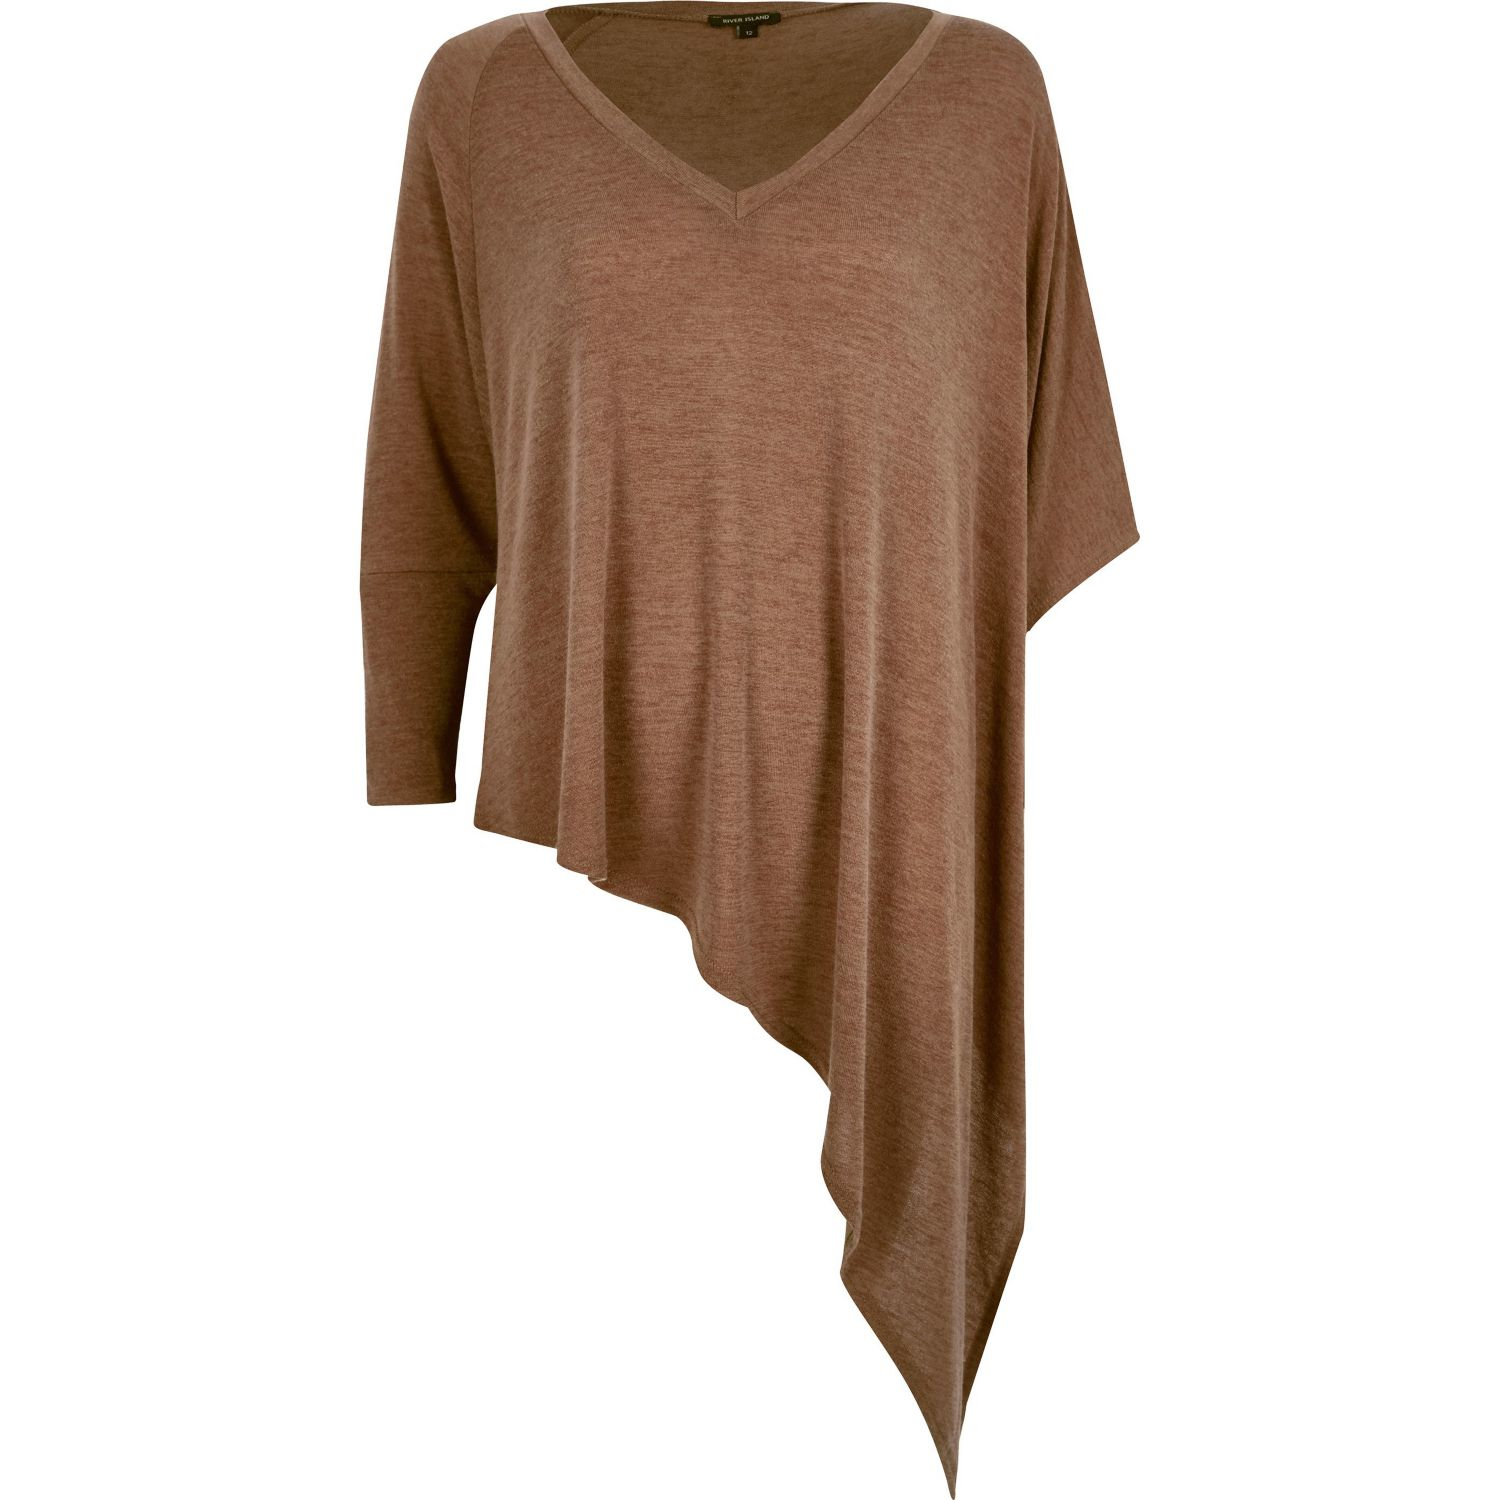 7bac25abfa89de River Island Brown Slouchy V-neck Asymmetric Knitted Top in Brown - Lyst